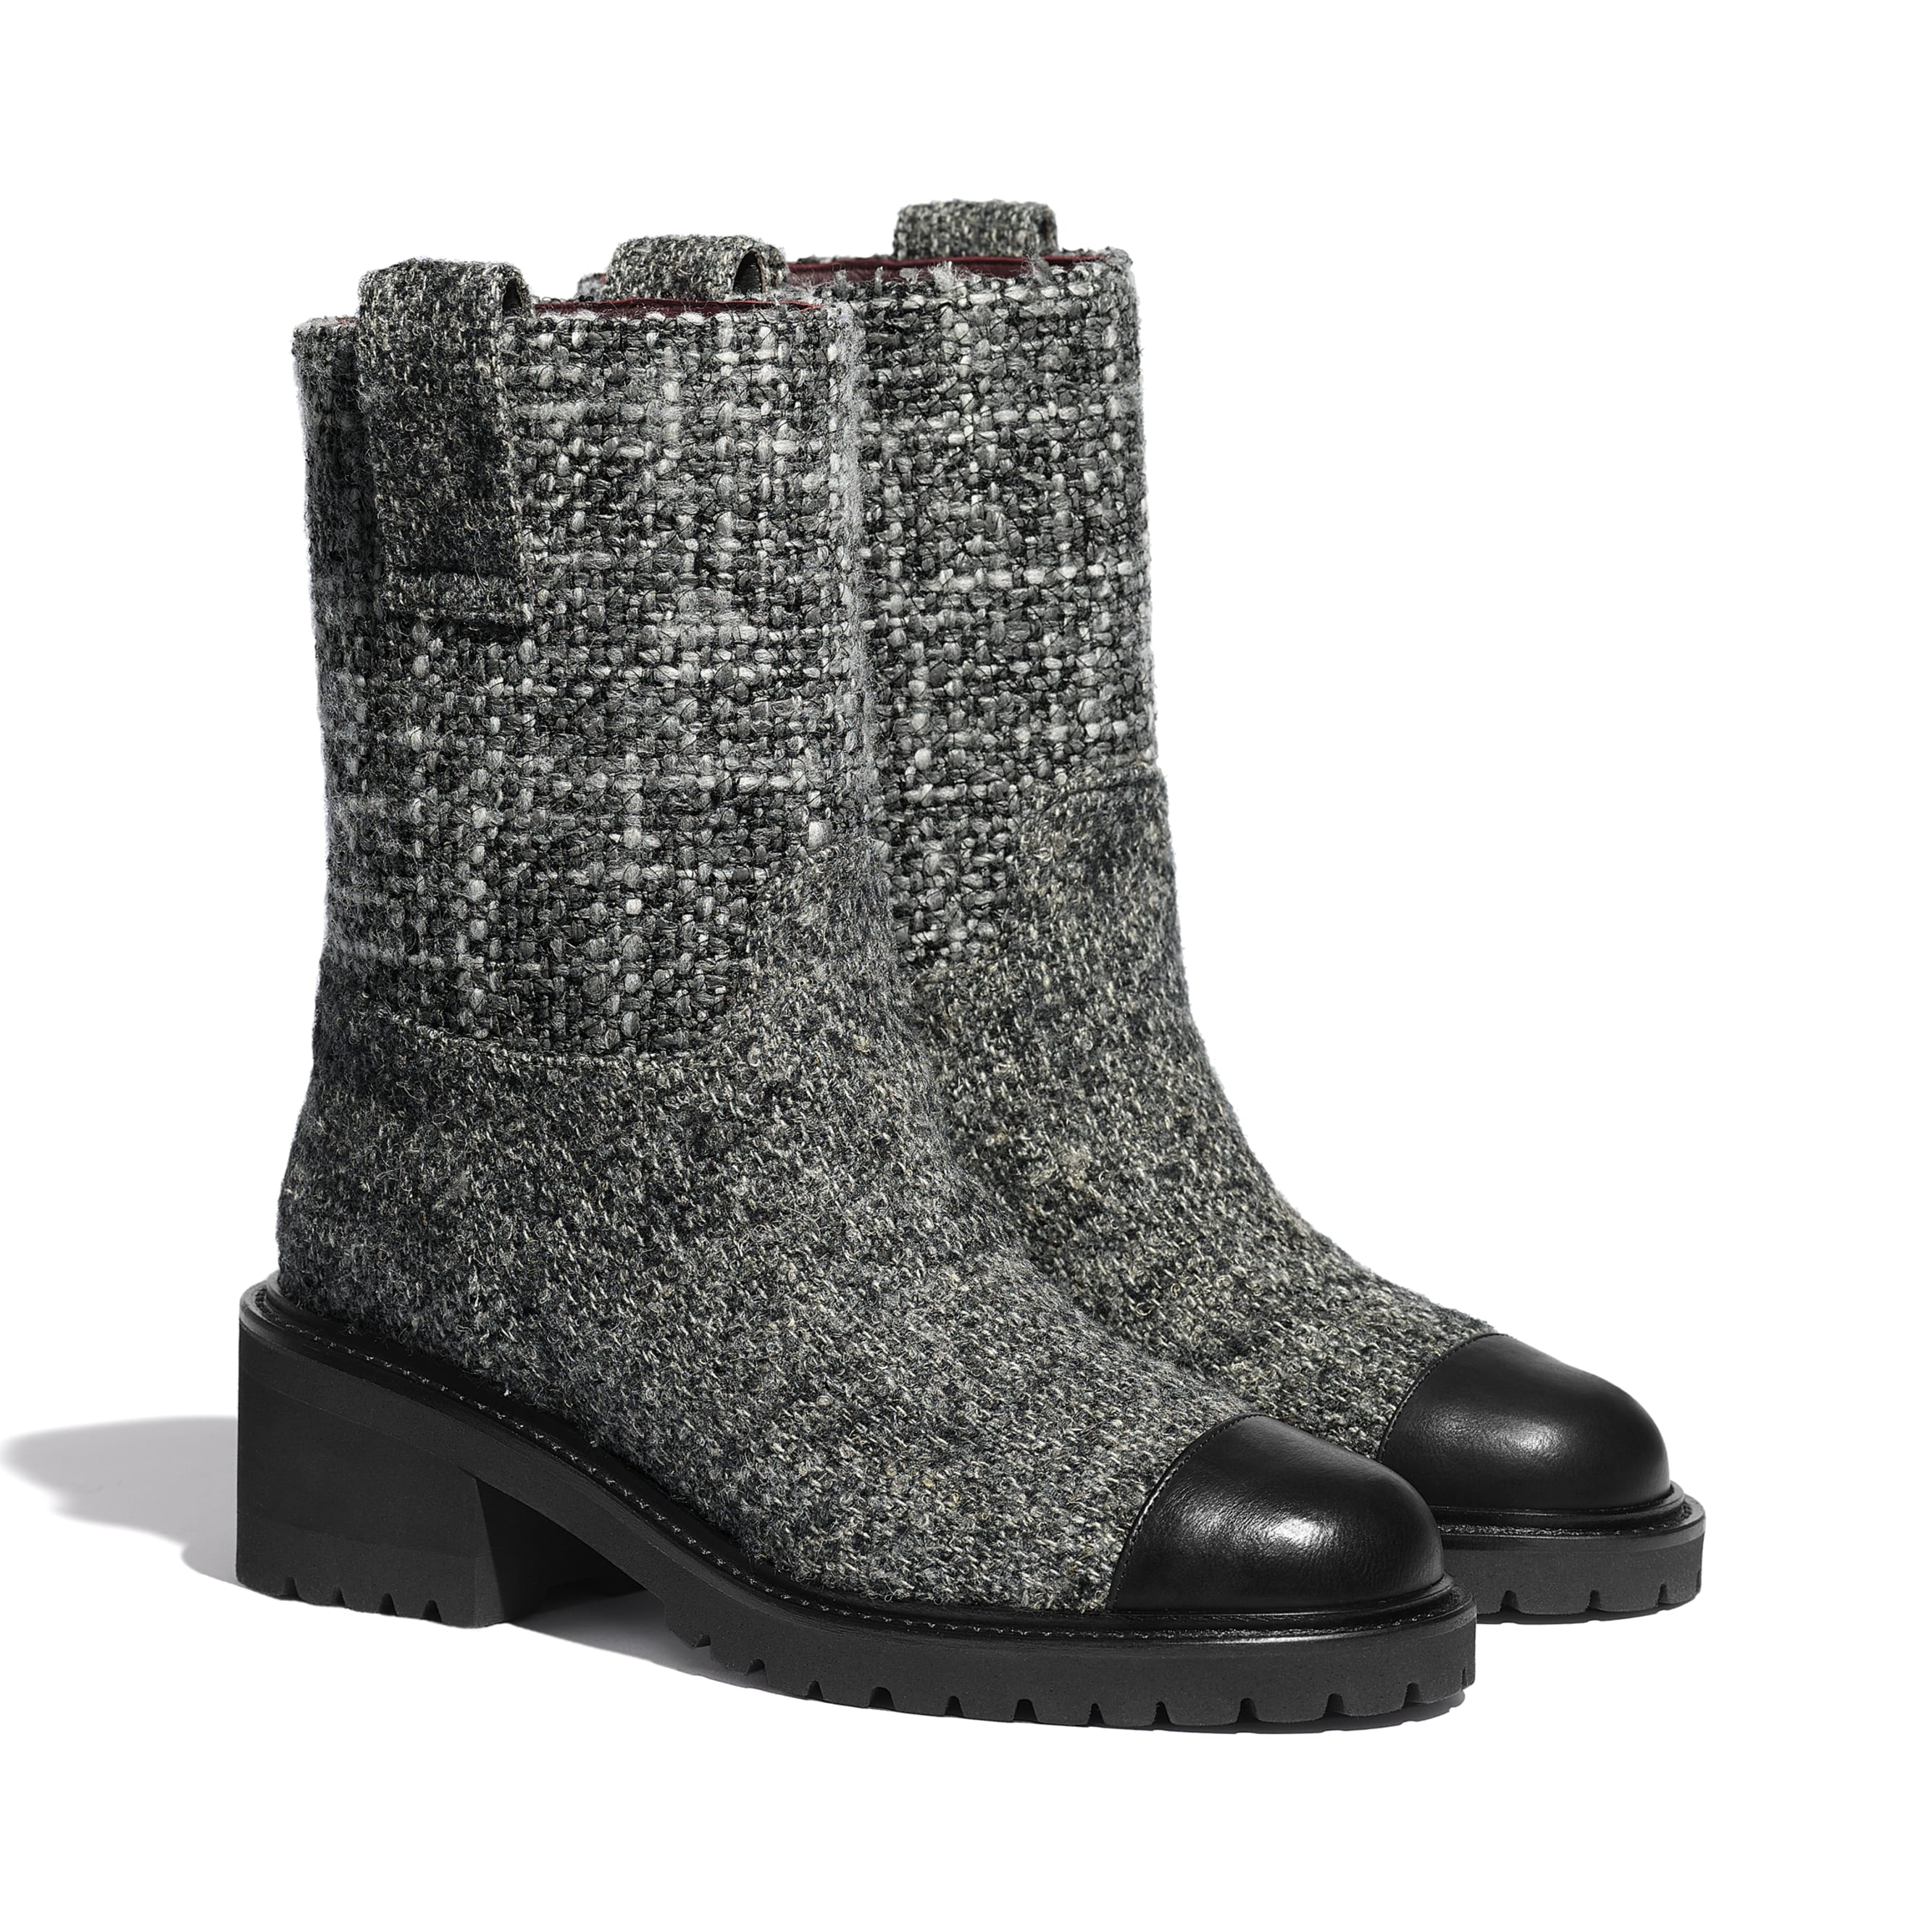 Ankle Boots - Grey & Black - Tweed & Calfskin - CHANEL - Alternative view - see standard sized version